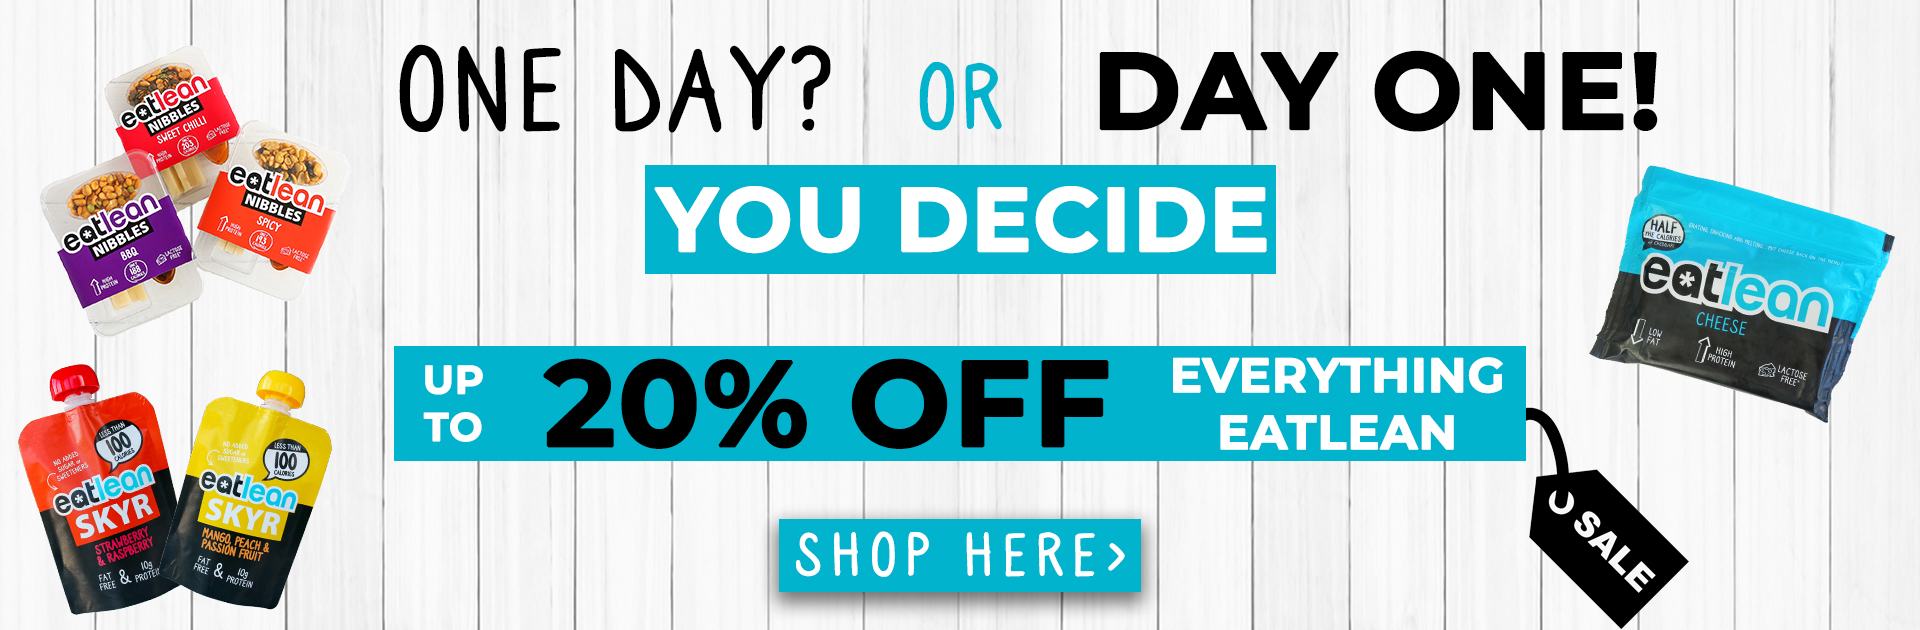 up to 20% off everything eatlean